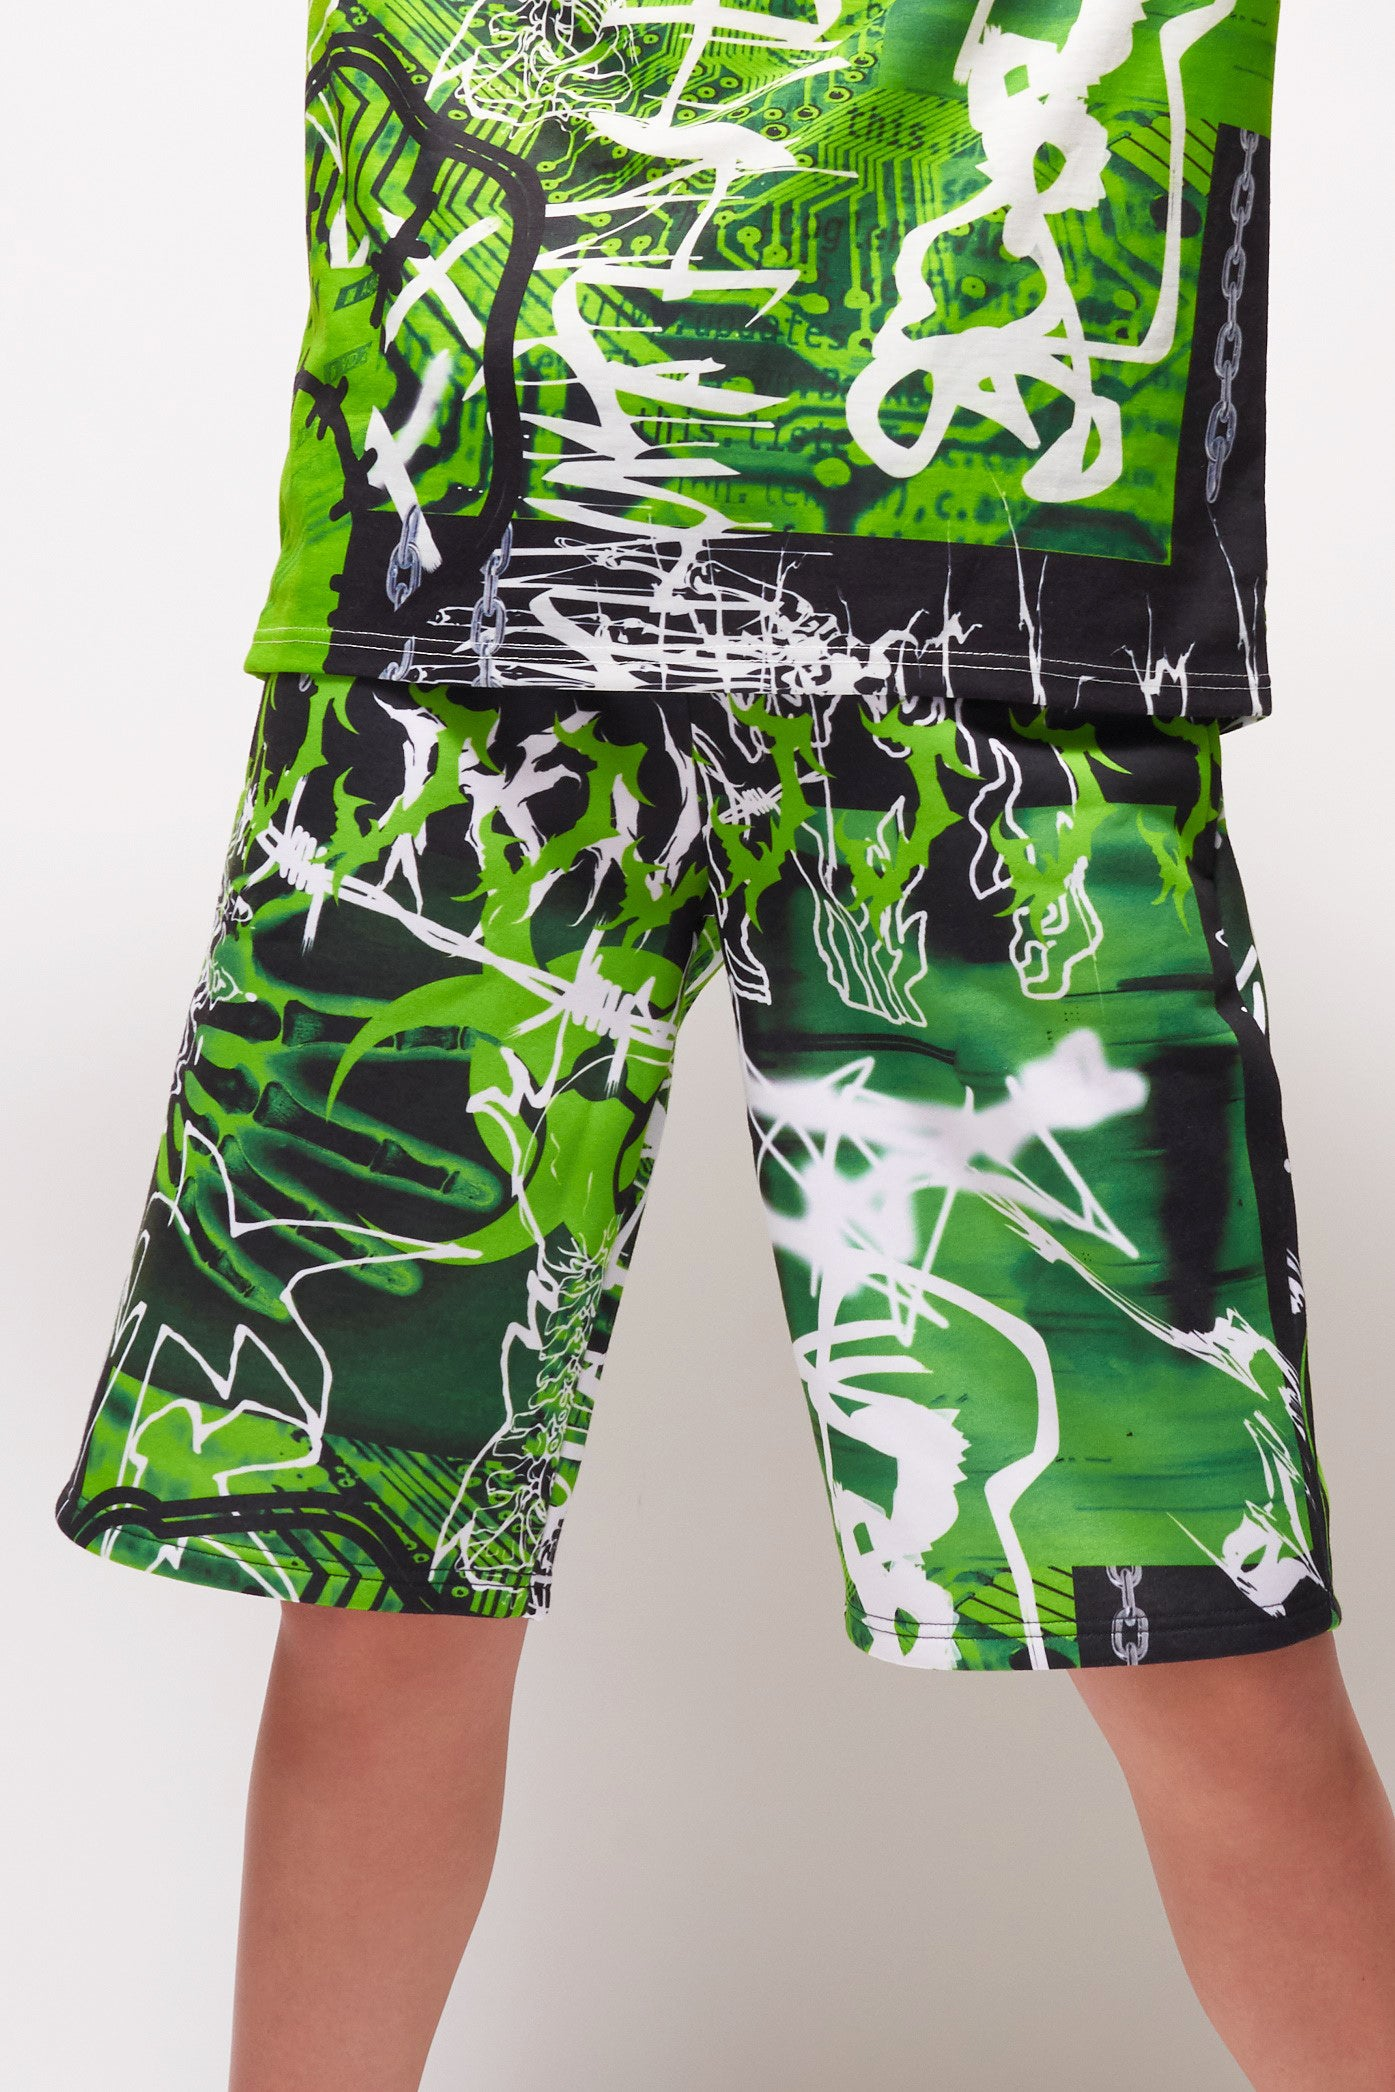 Parallel Trippy Acid Oversized Shorts